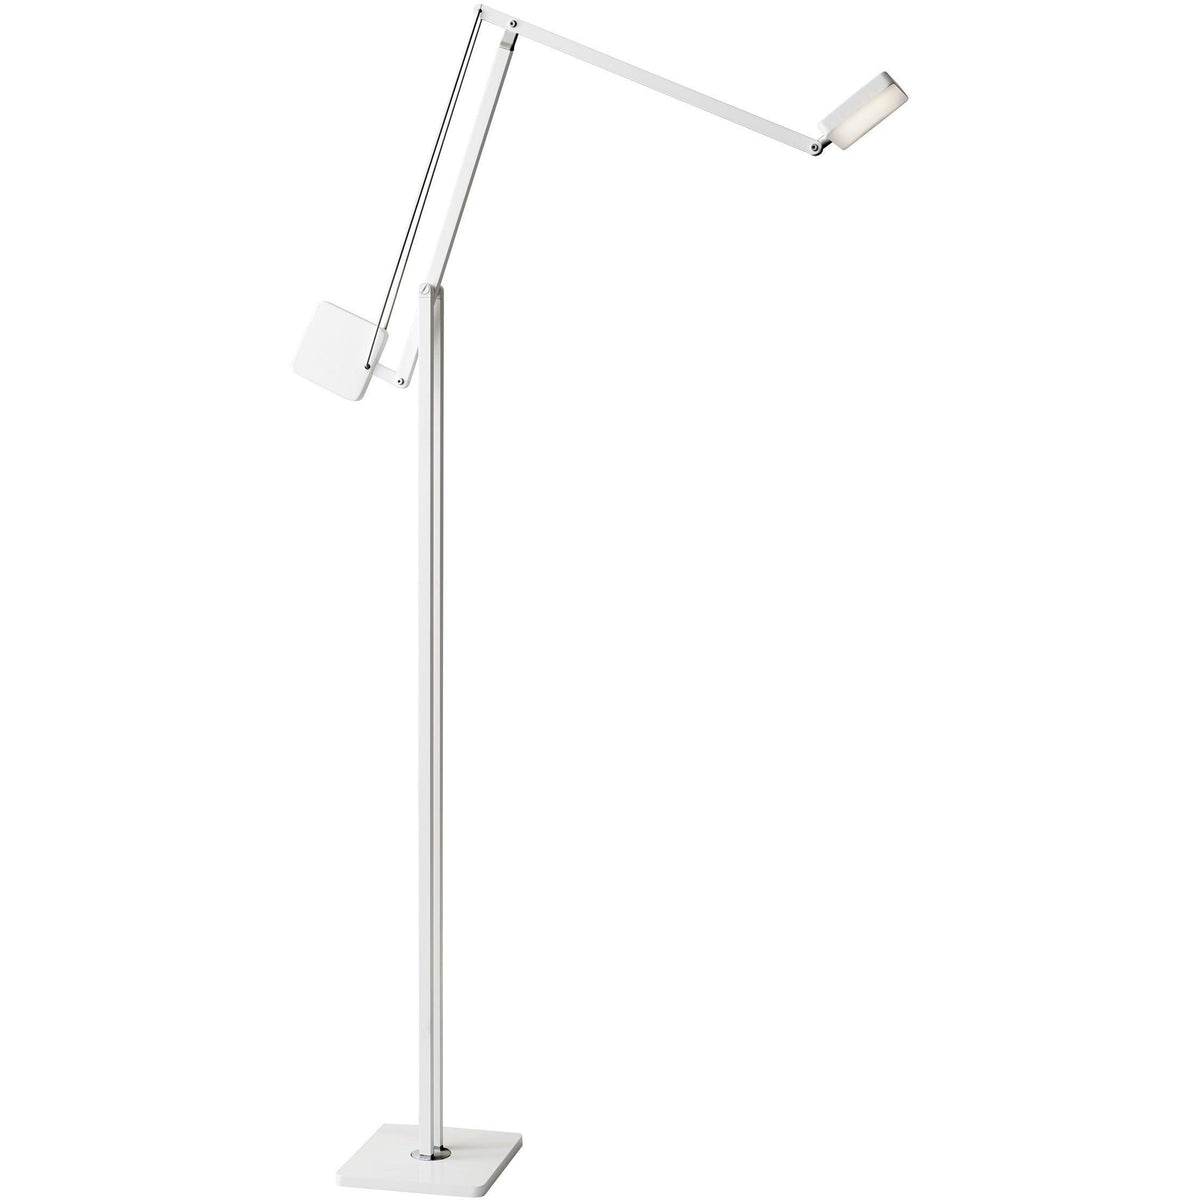 Adesso Home - AD9131-02 - LED Floor Lamp - Cooper - Matte White